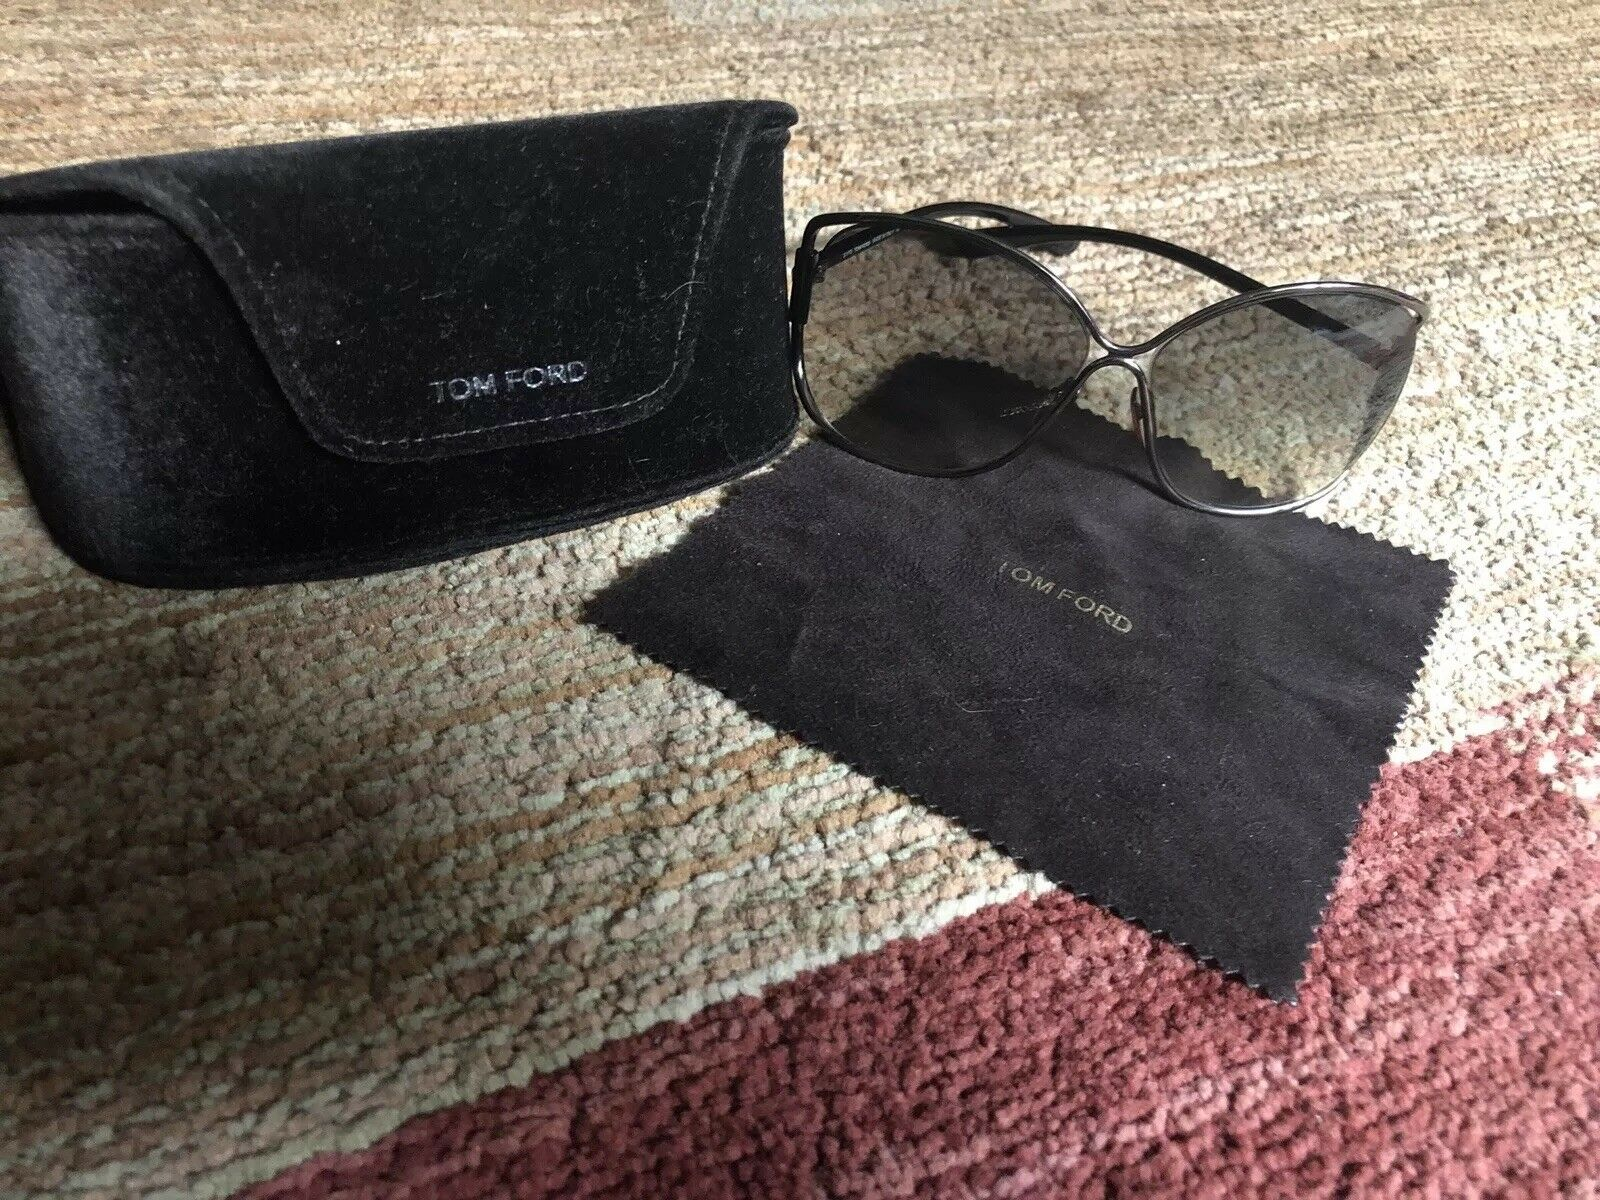 100% Authentic TOM FORD Emmeline Sunglasses with case